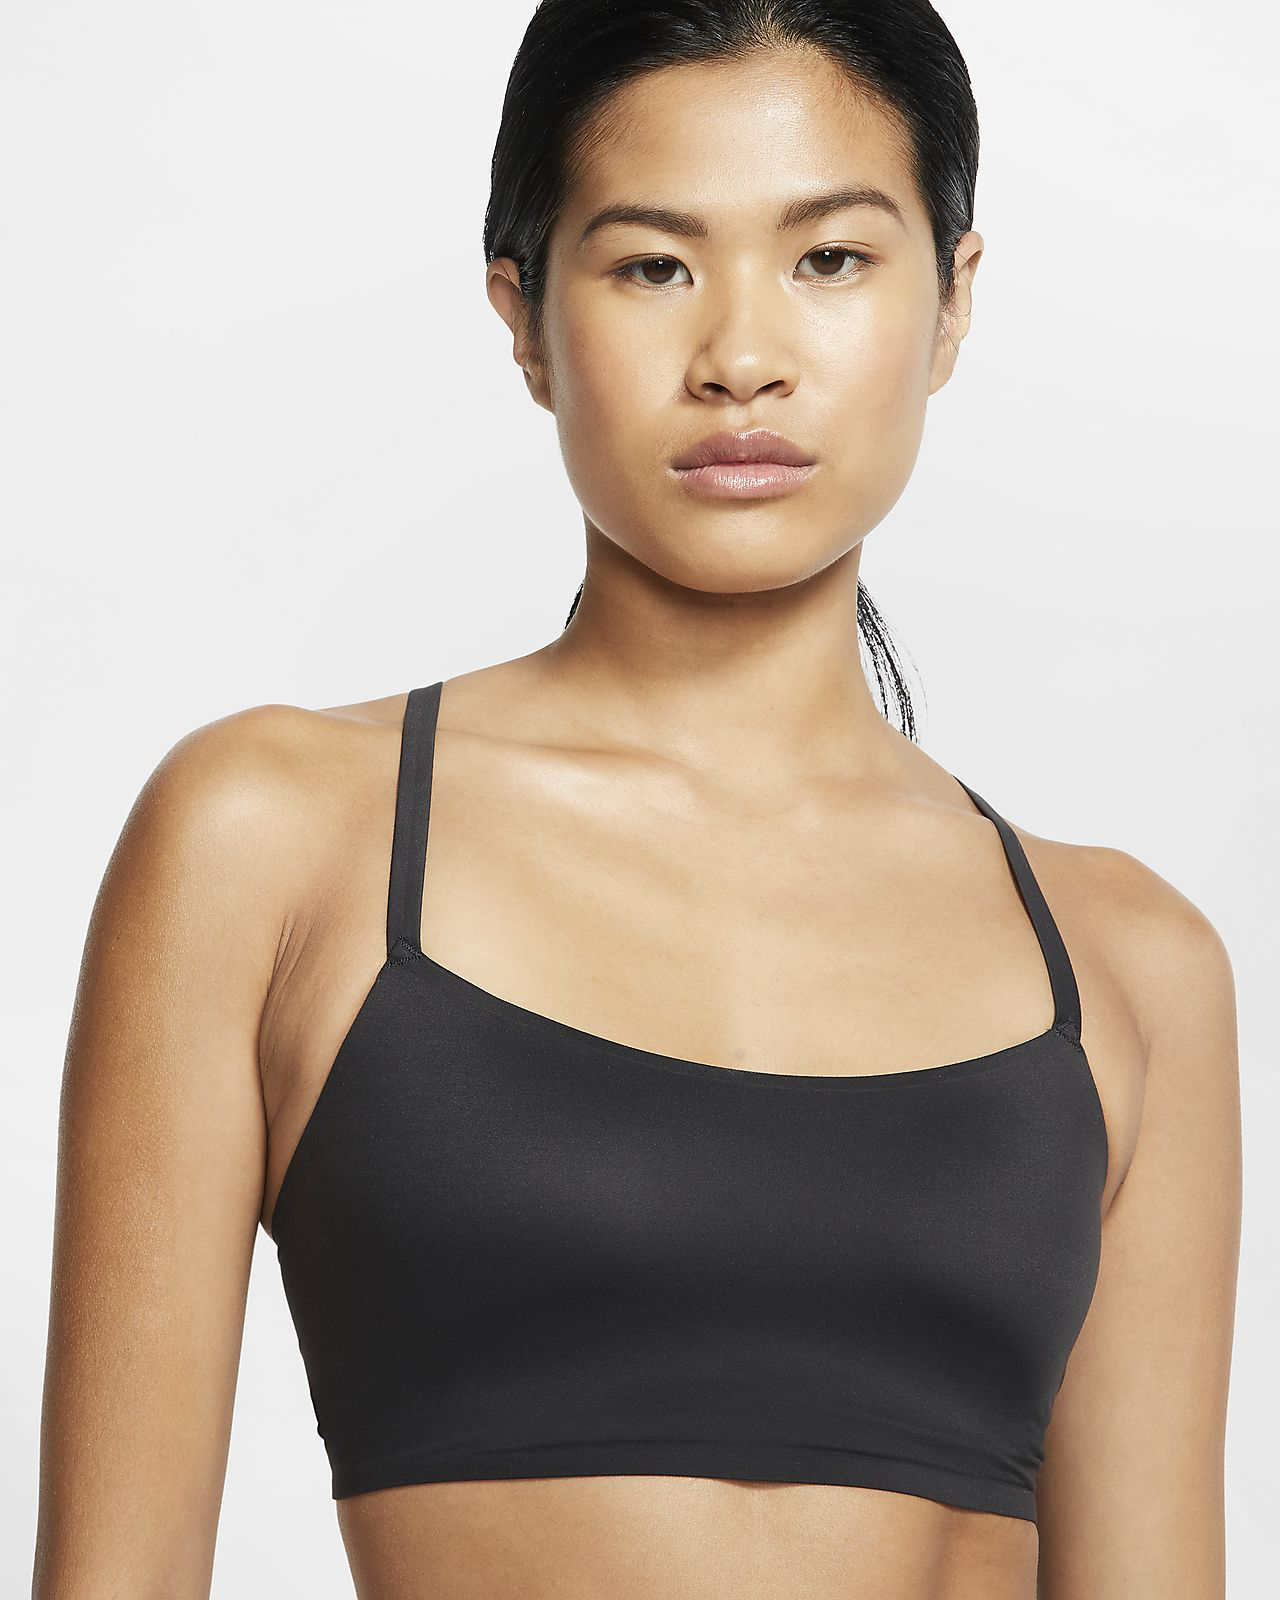 Nike Indy Luxe Women's Light-Support Sports Bra